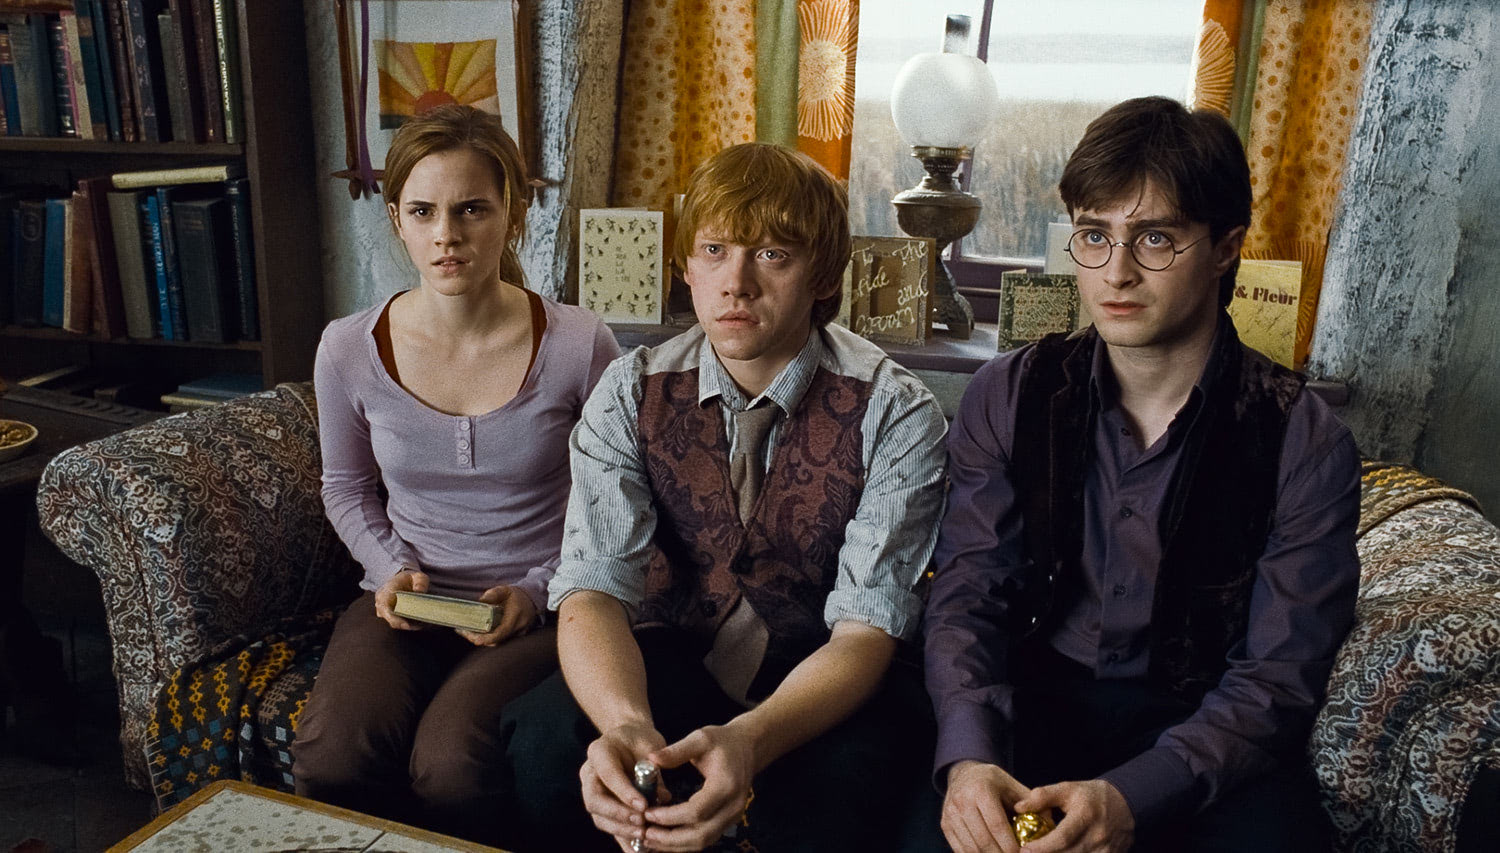 Hermione, Ron and Harry addressed by Scrimgeour